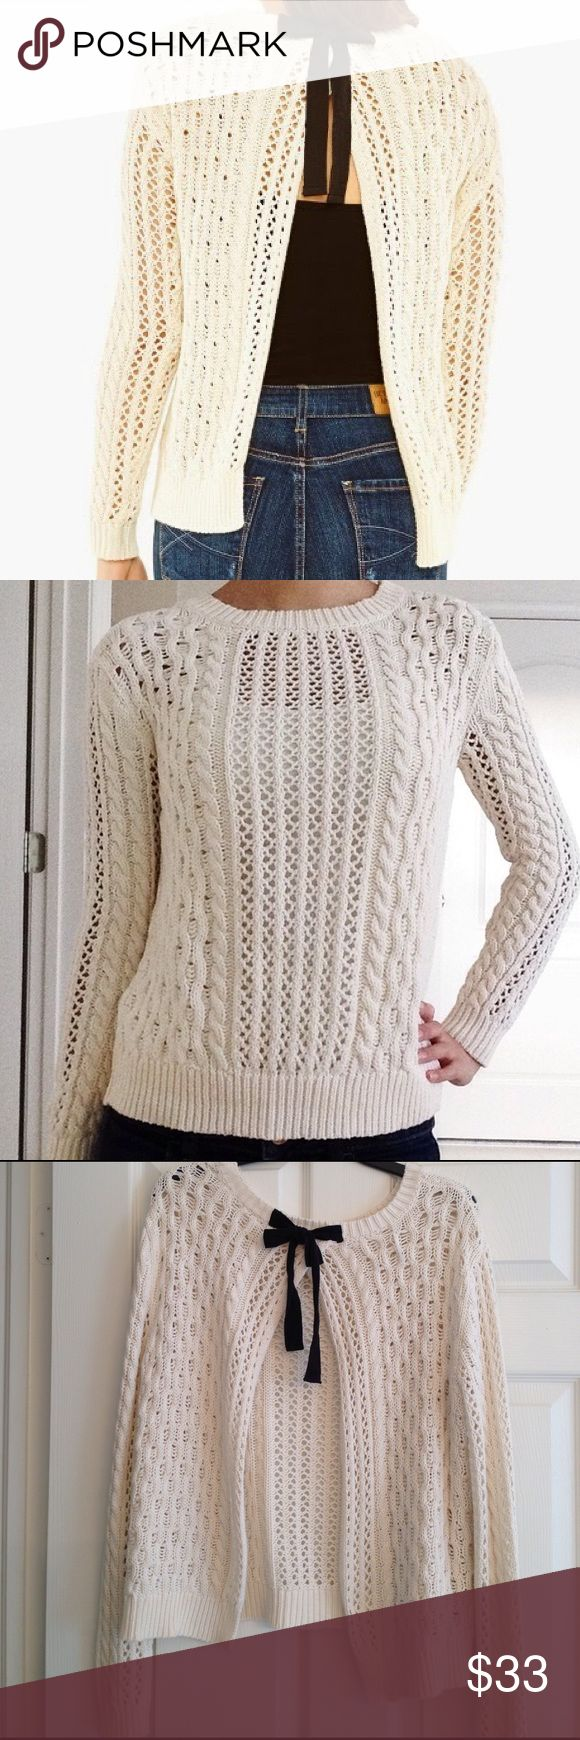 BETHANY MOTA CREAM RIBBON-TIE OPEN BACK SWEATER Great cream colour.. Crocheted sweater with black ribbon tie in the back which is open. A camisole or under later is required. In excellent condition. BETHANY MOTA Sweaters